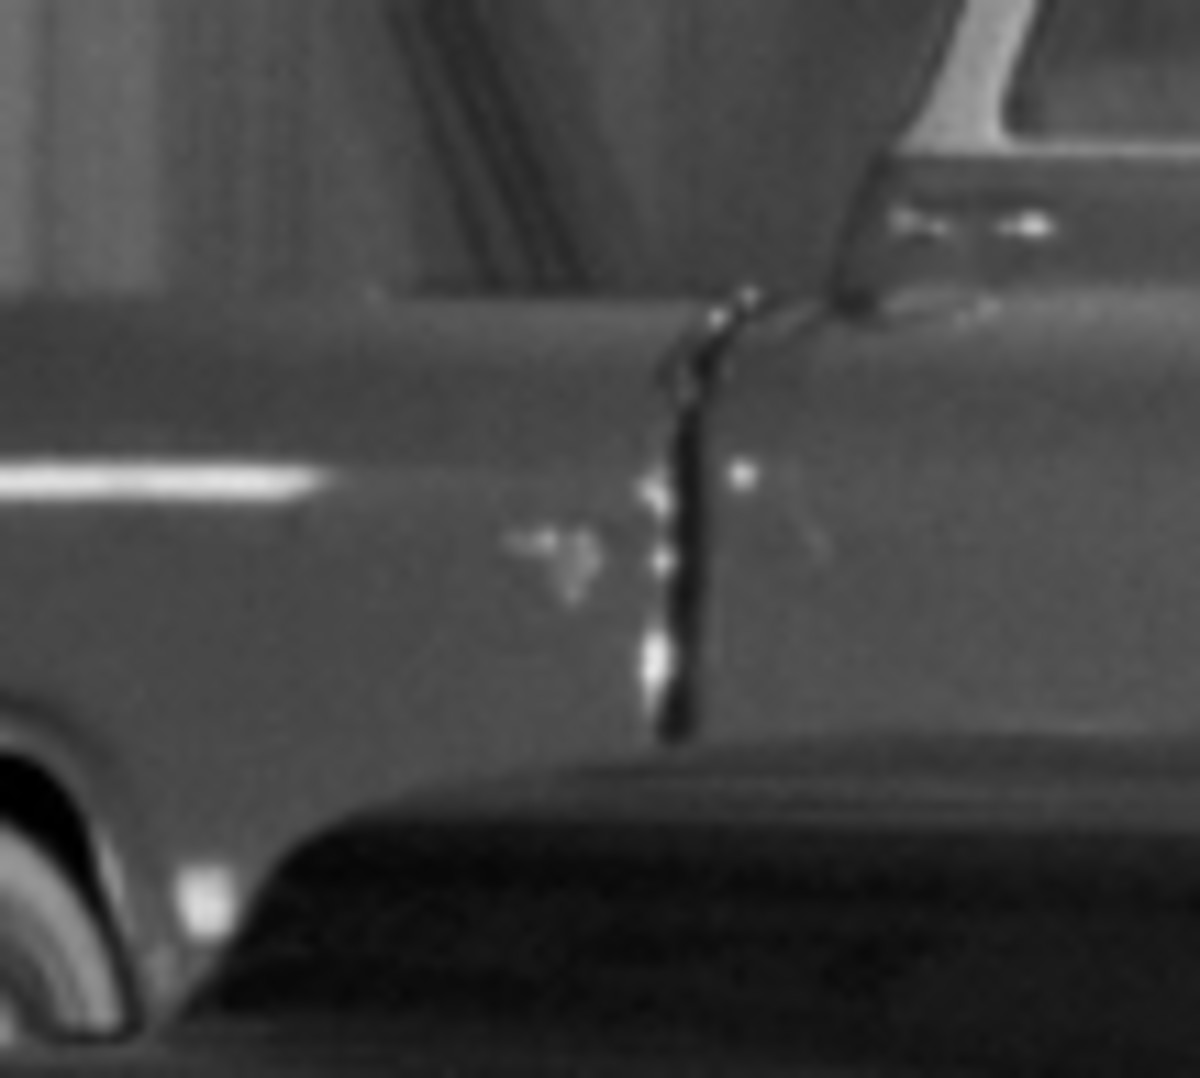 A close-up of the unique emblem at the leading edge of the Bluegrass Runabout's bed. The nature of the emblem is as unclear as this image. (GM Media Archive collection)